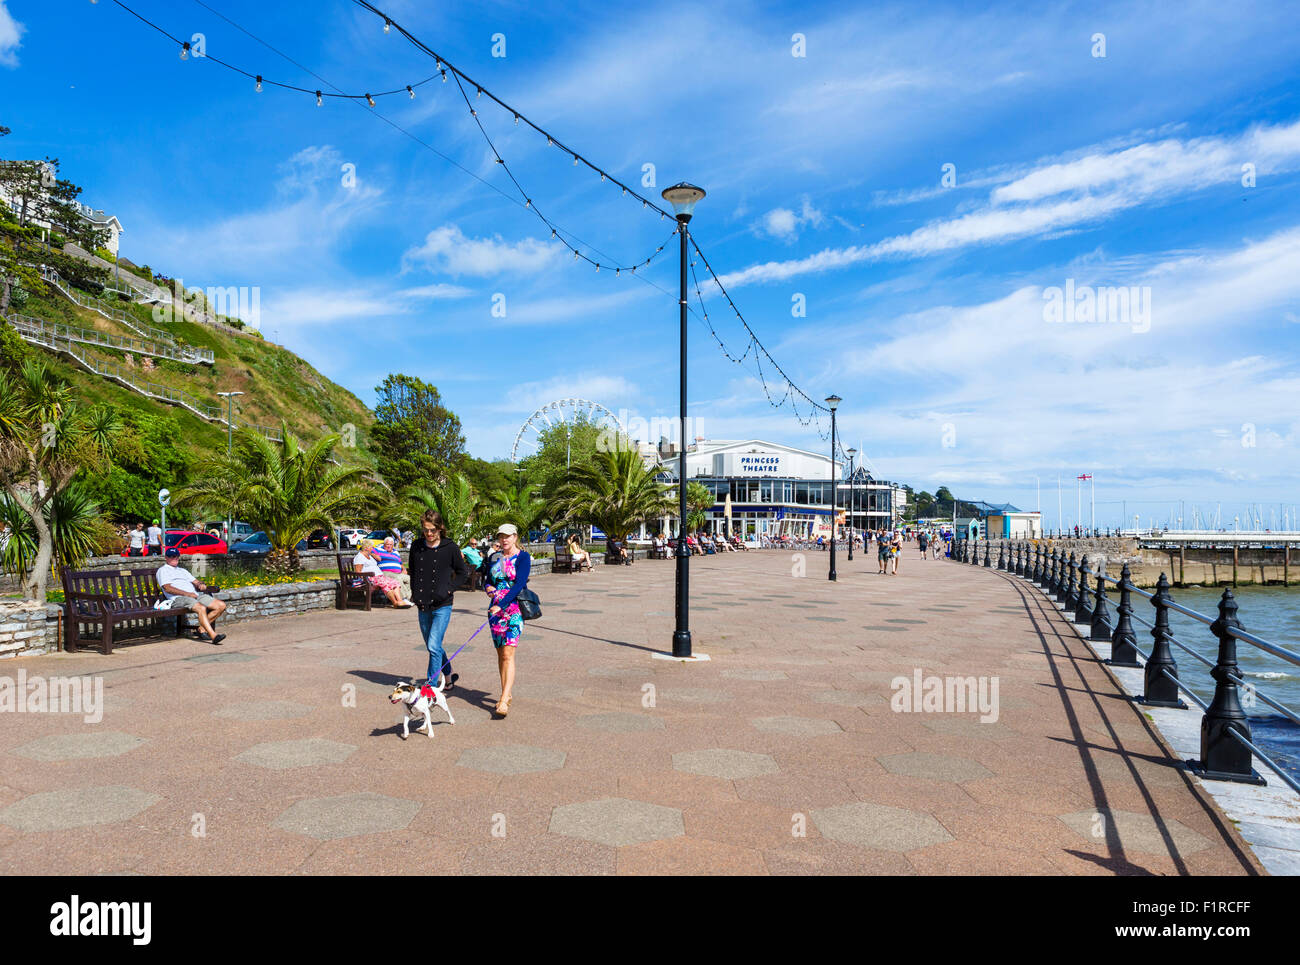 Promenade in Torquay, Torbay, Devon, England, UK - Stock Image